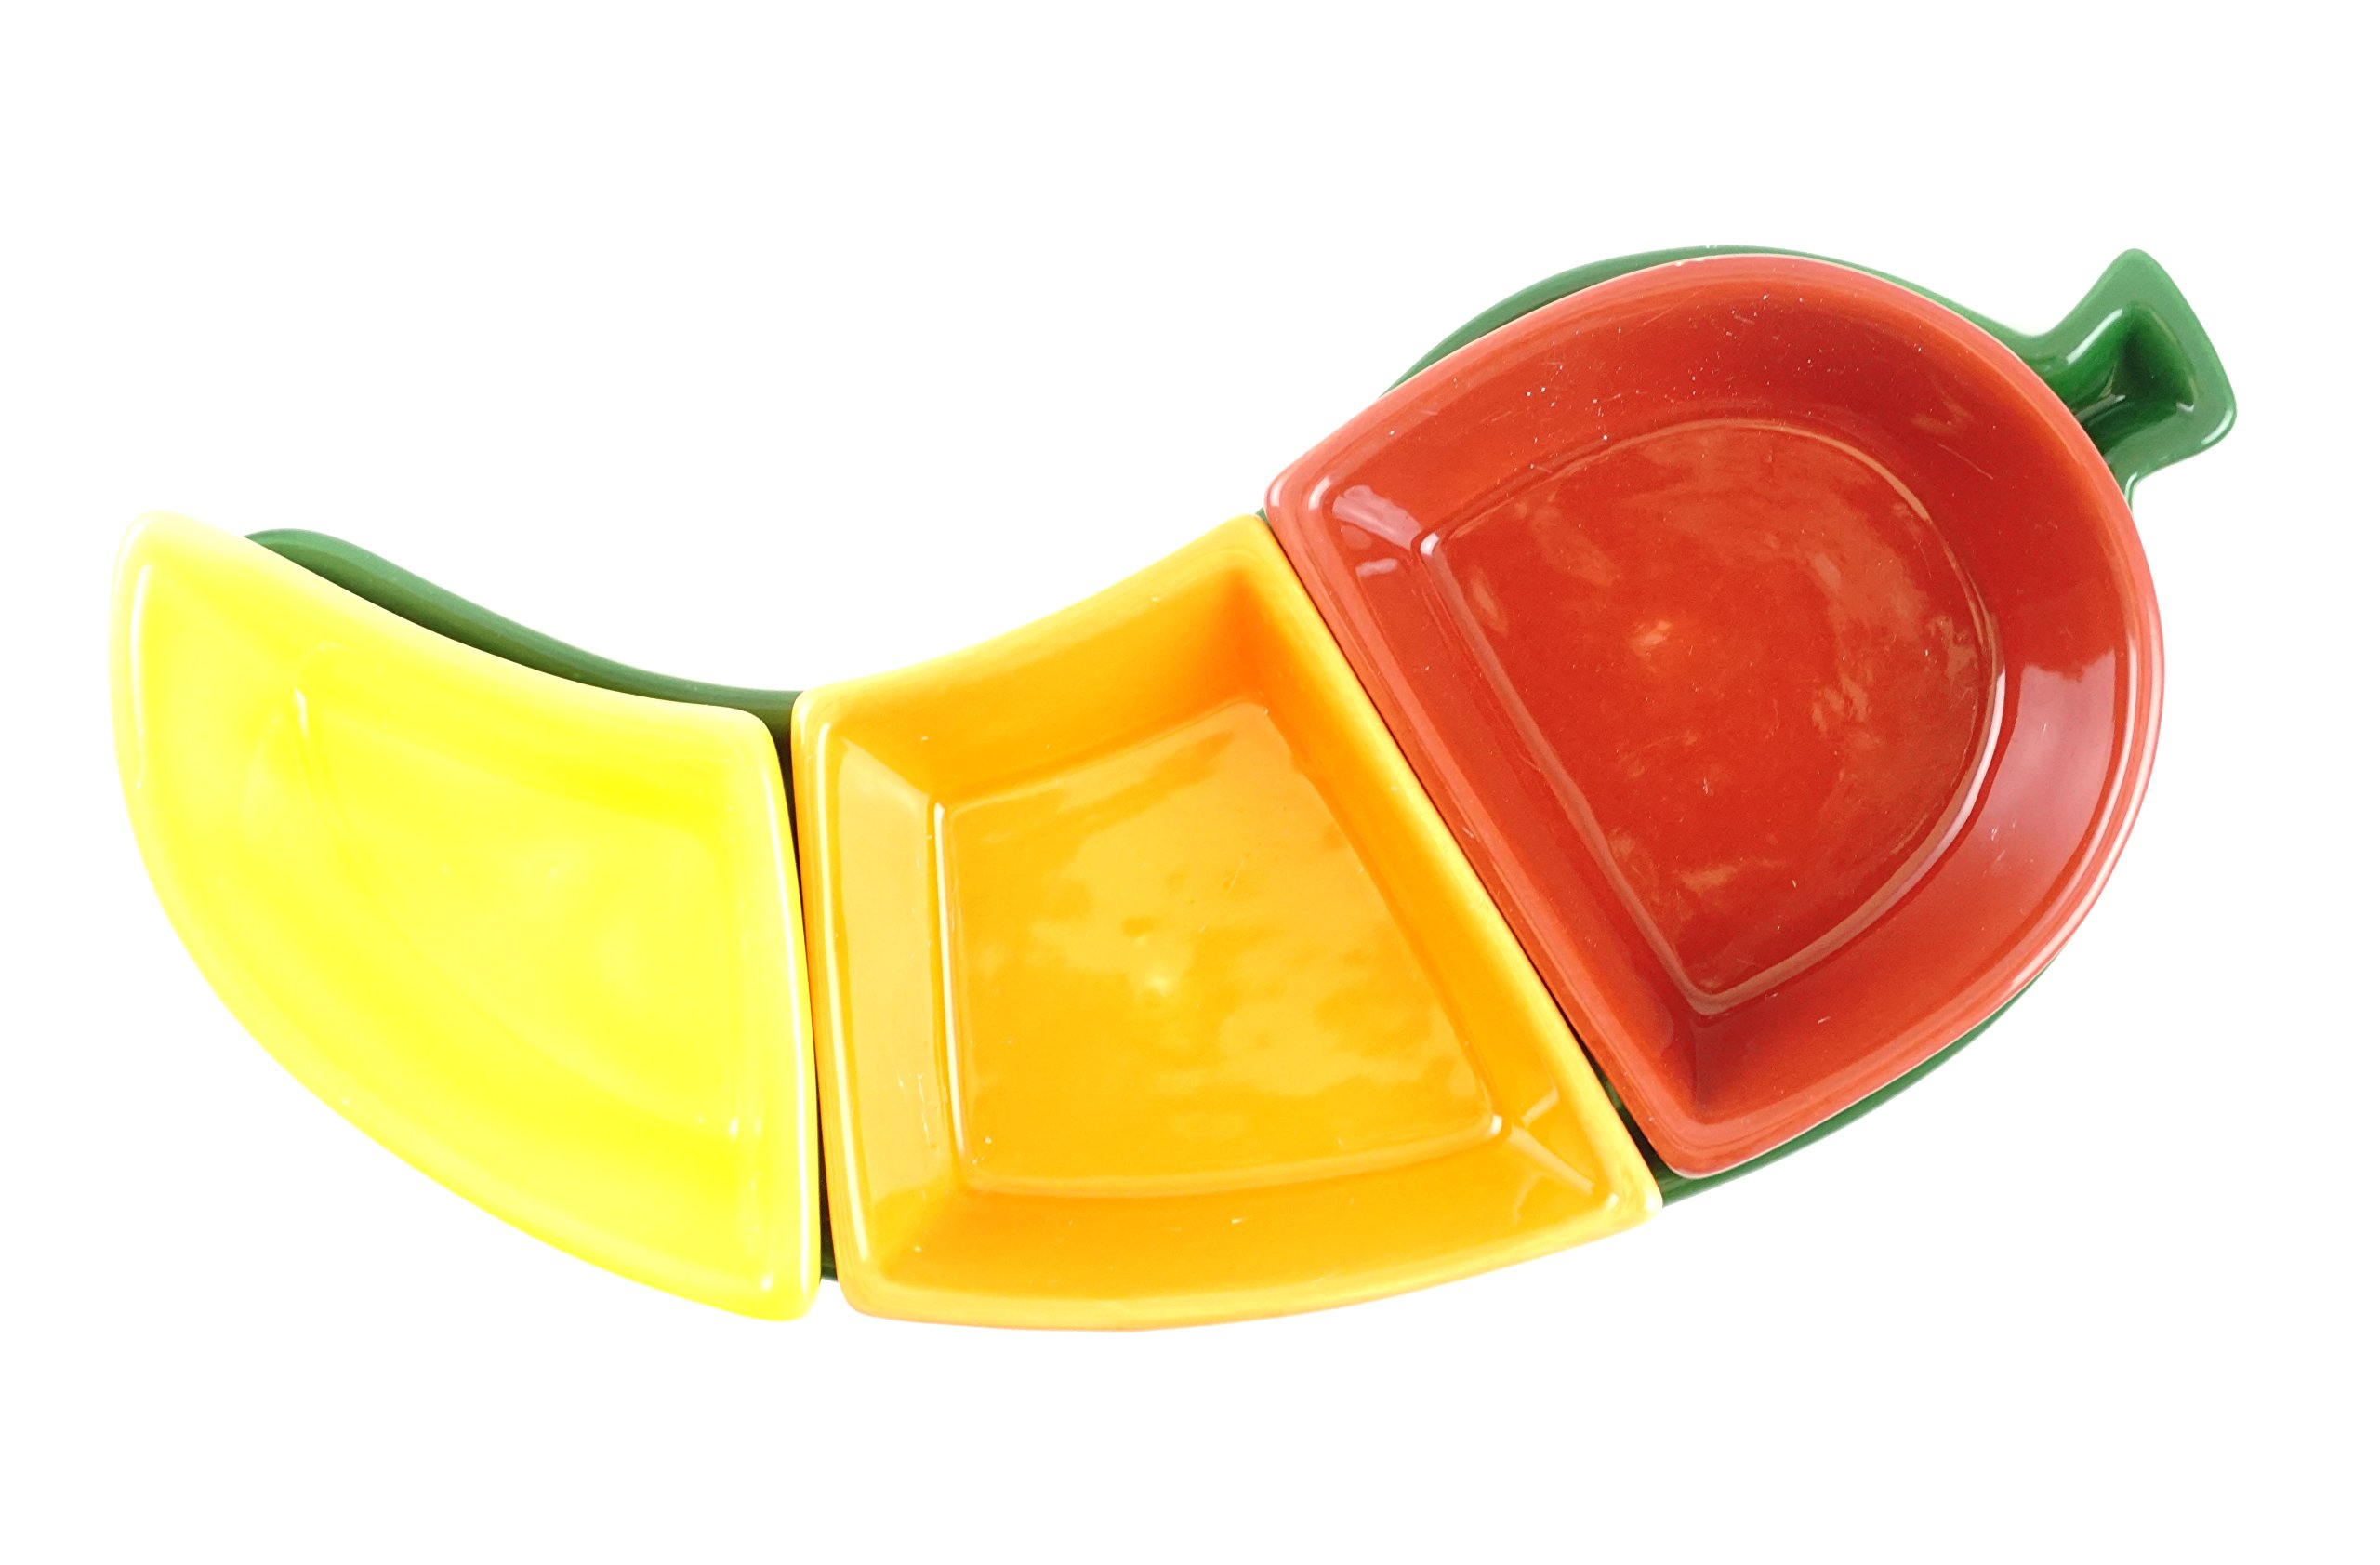 Fiesta Chili Pepper Tray with Stackable Dip Salsa Bowl Dish Set by Meadow Farms (Image #2)